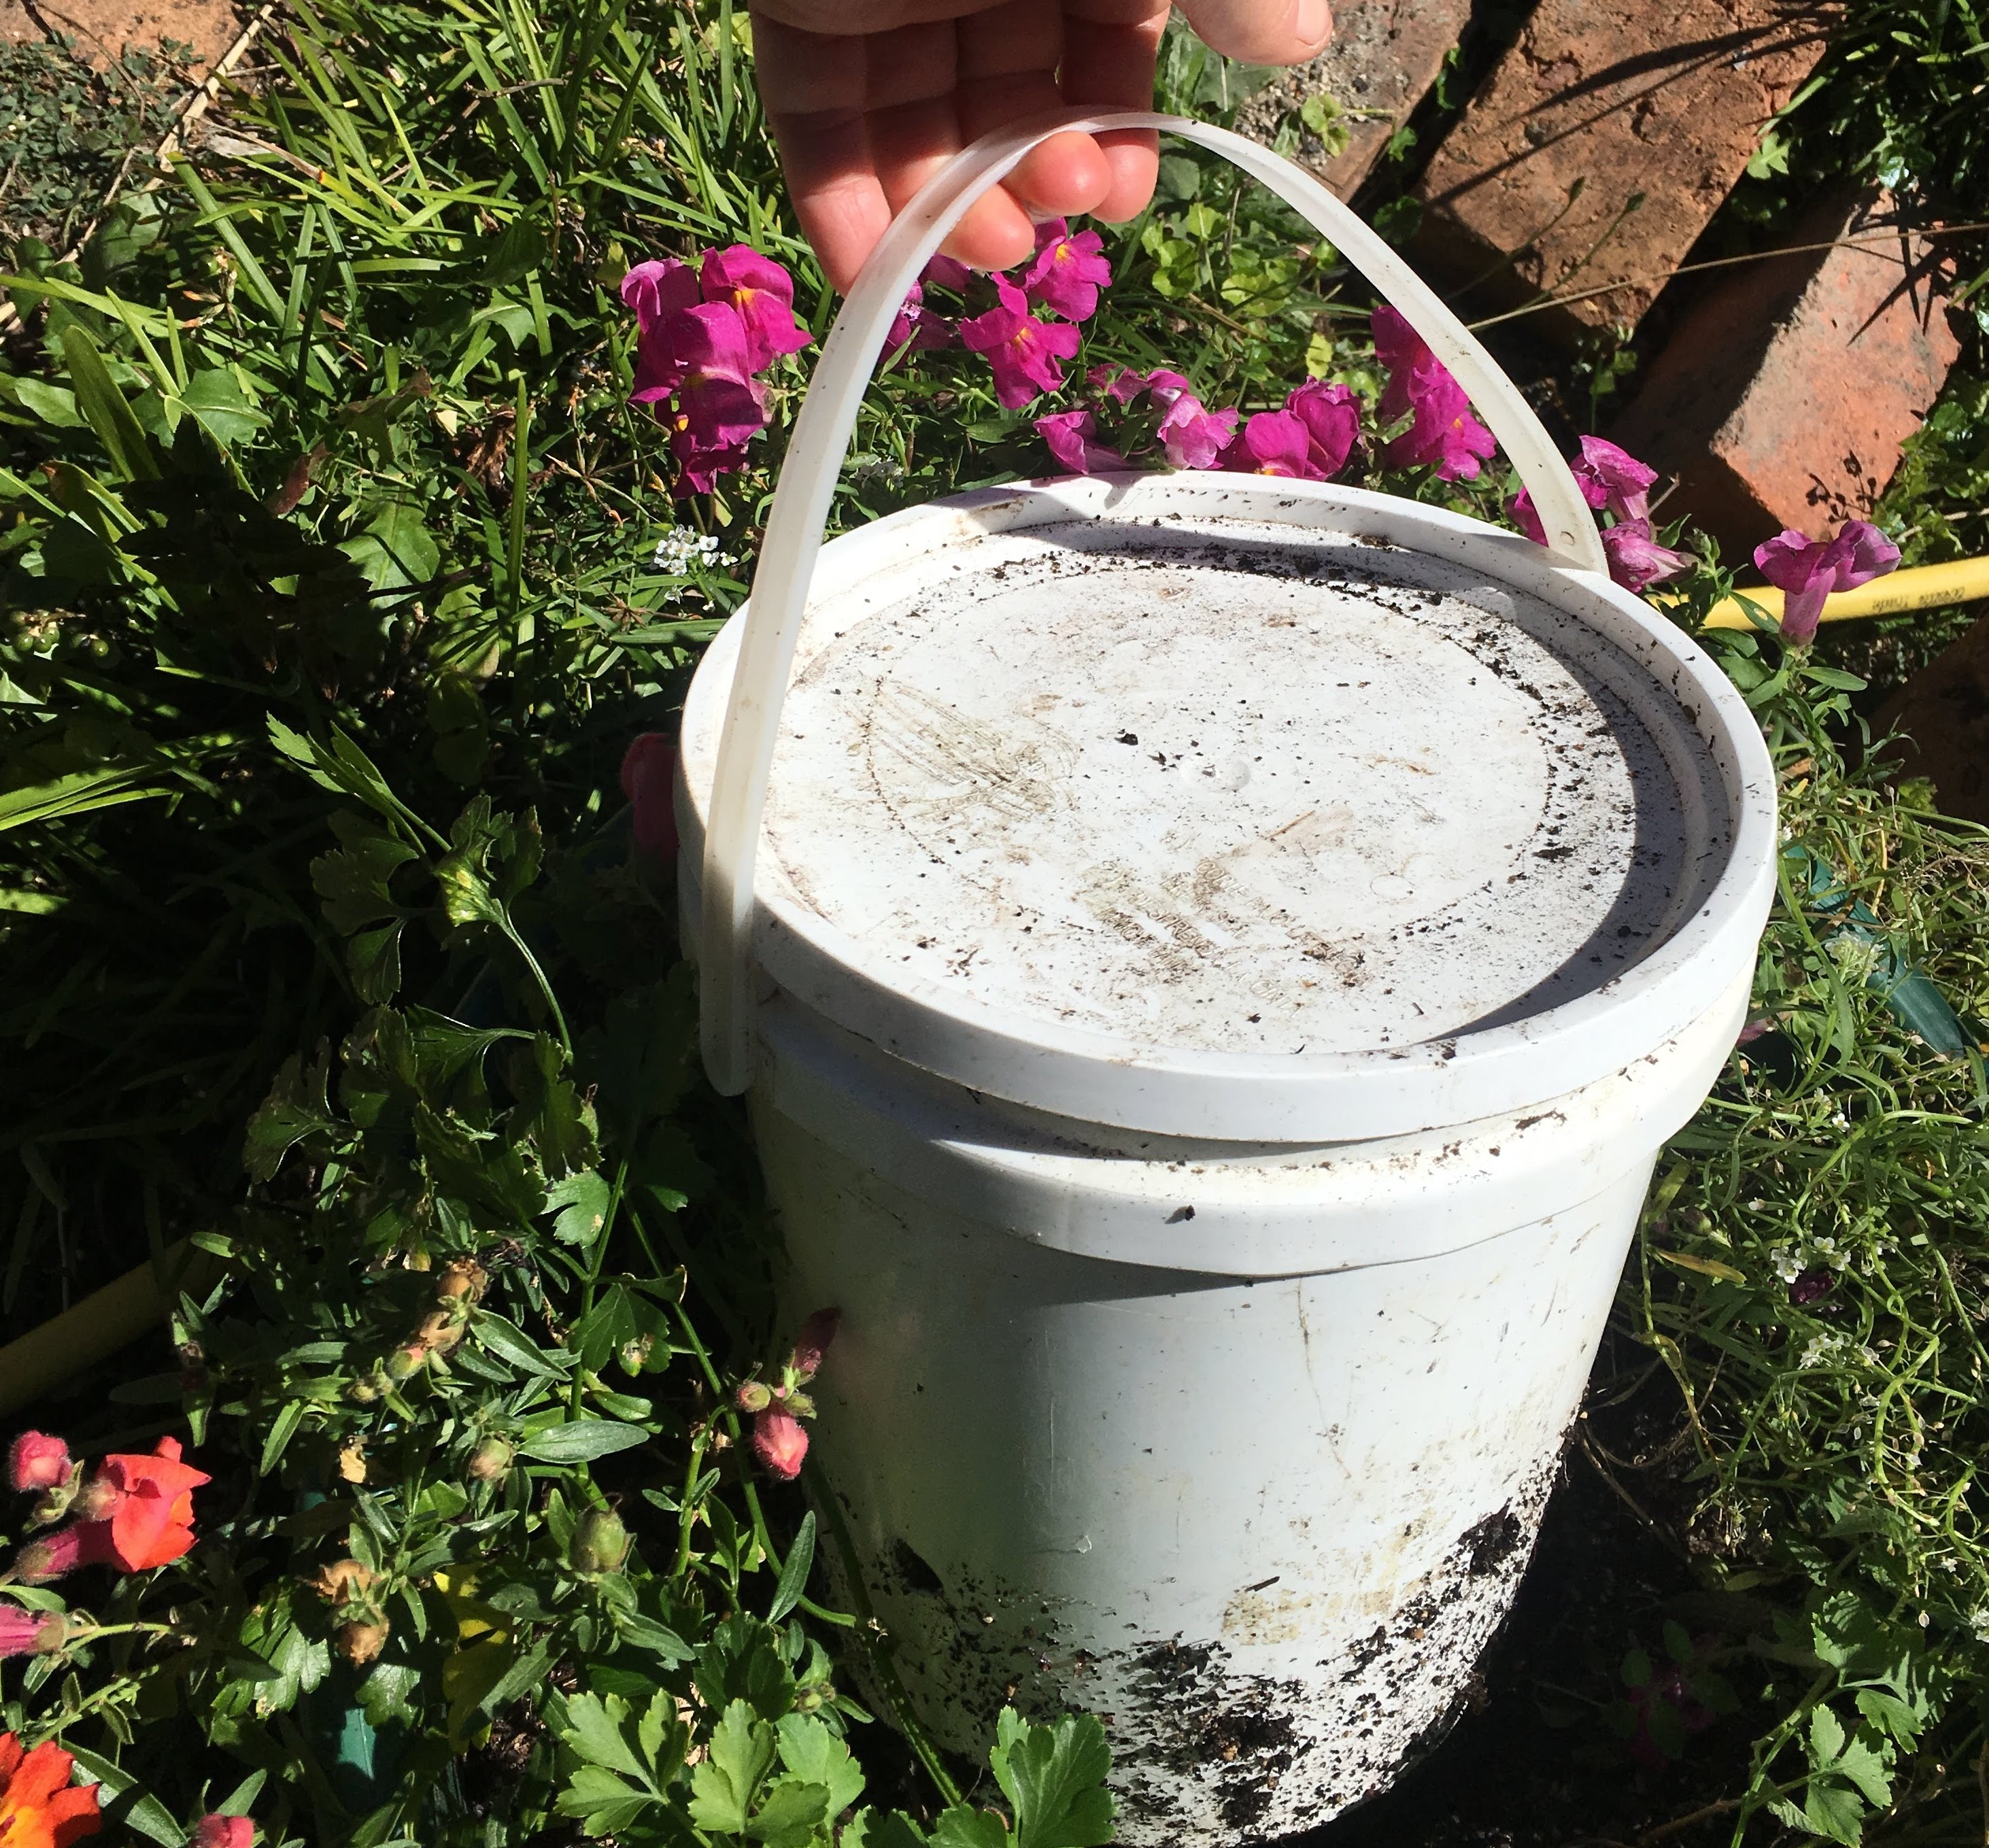 Bucket with flowers growing around it